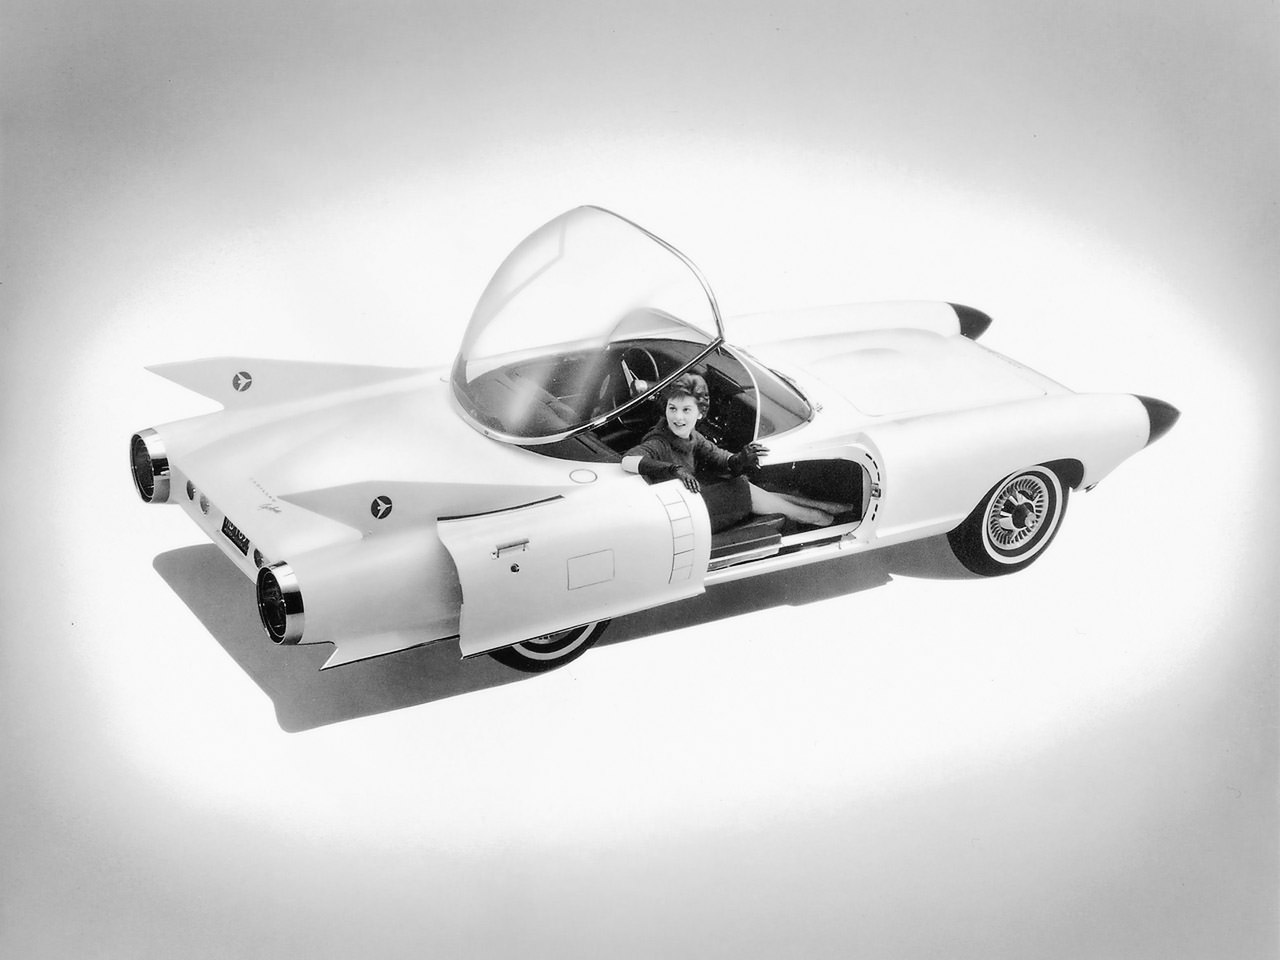 6 - A model sits in the Cadillac Cyclone in Detroit, US in 1959. This was a concept car built and shown off but never went into production.